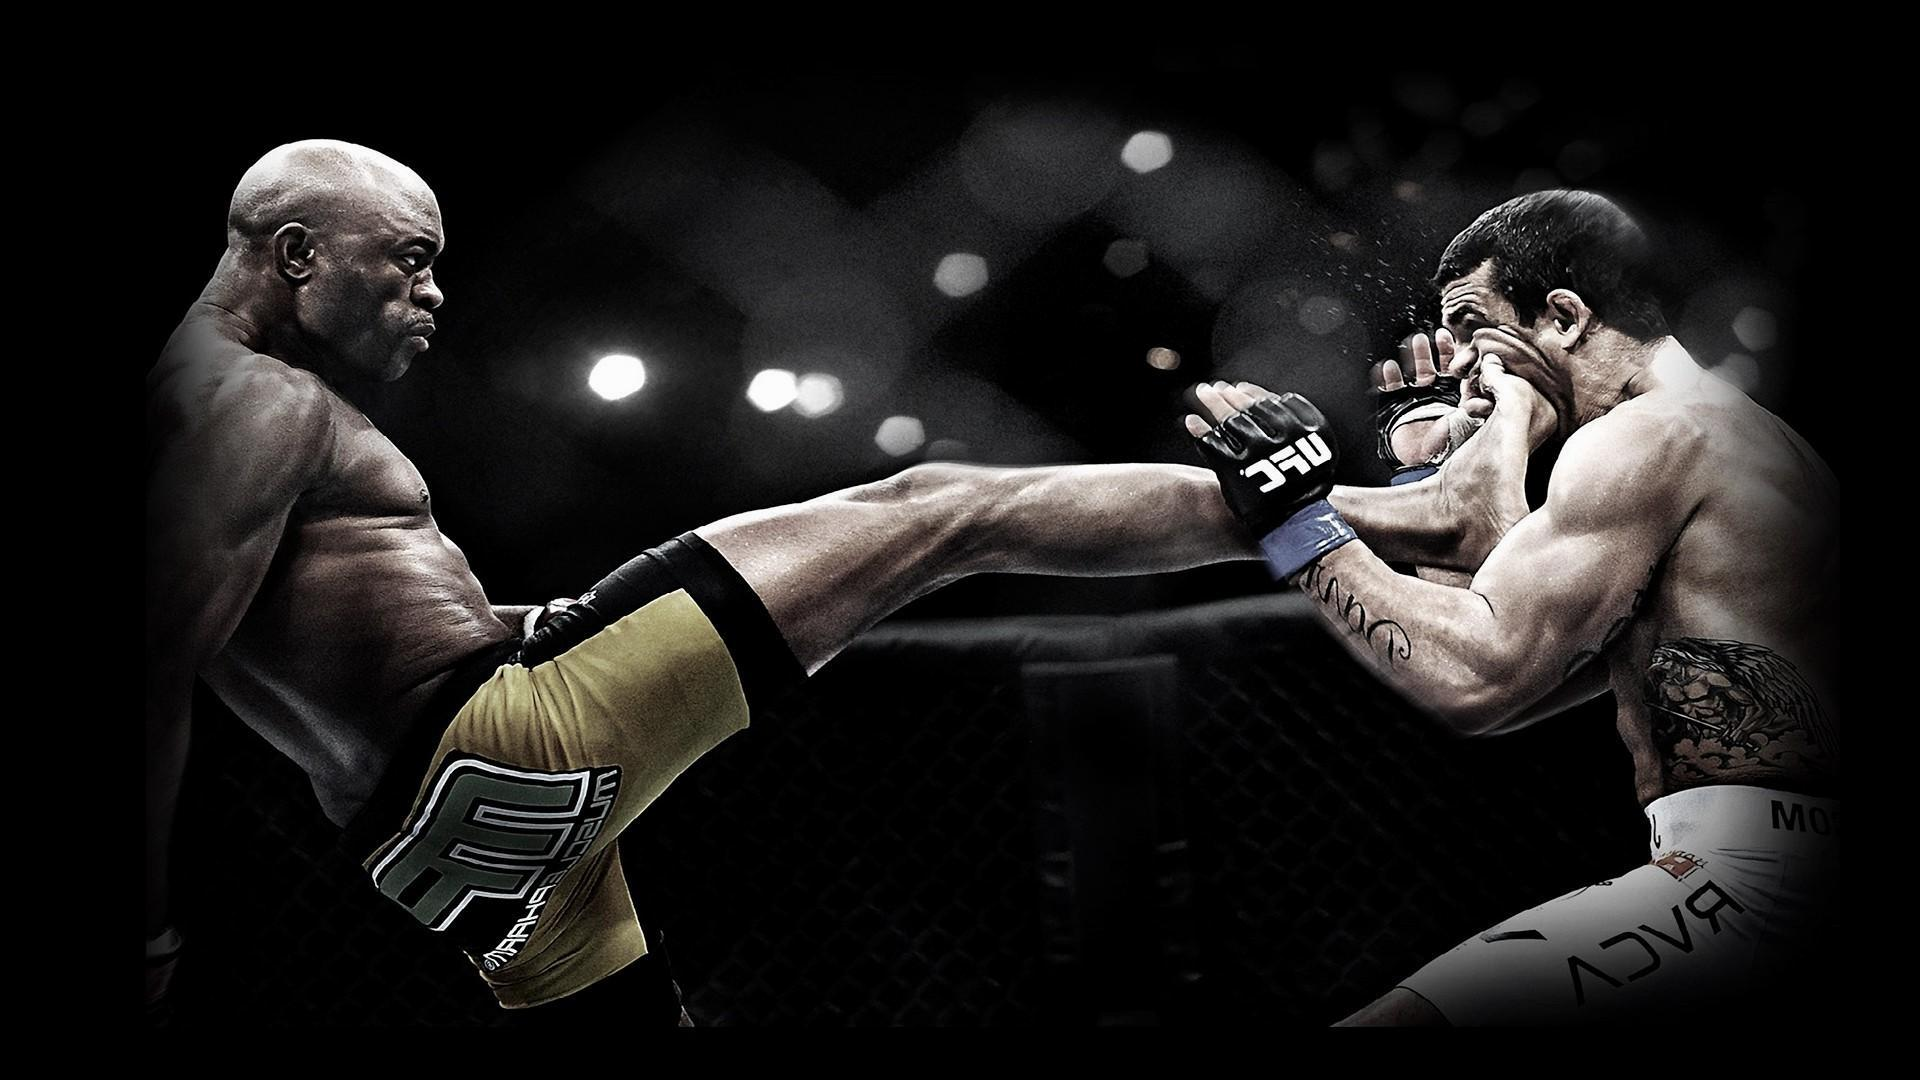 Ufc Wallpapers HD Backgrounds Images Pics Photos Download 1920x1080